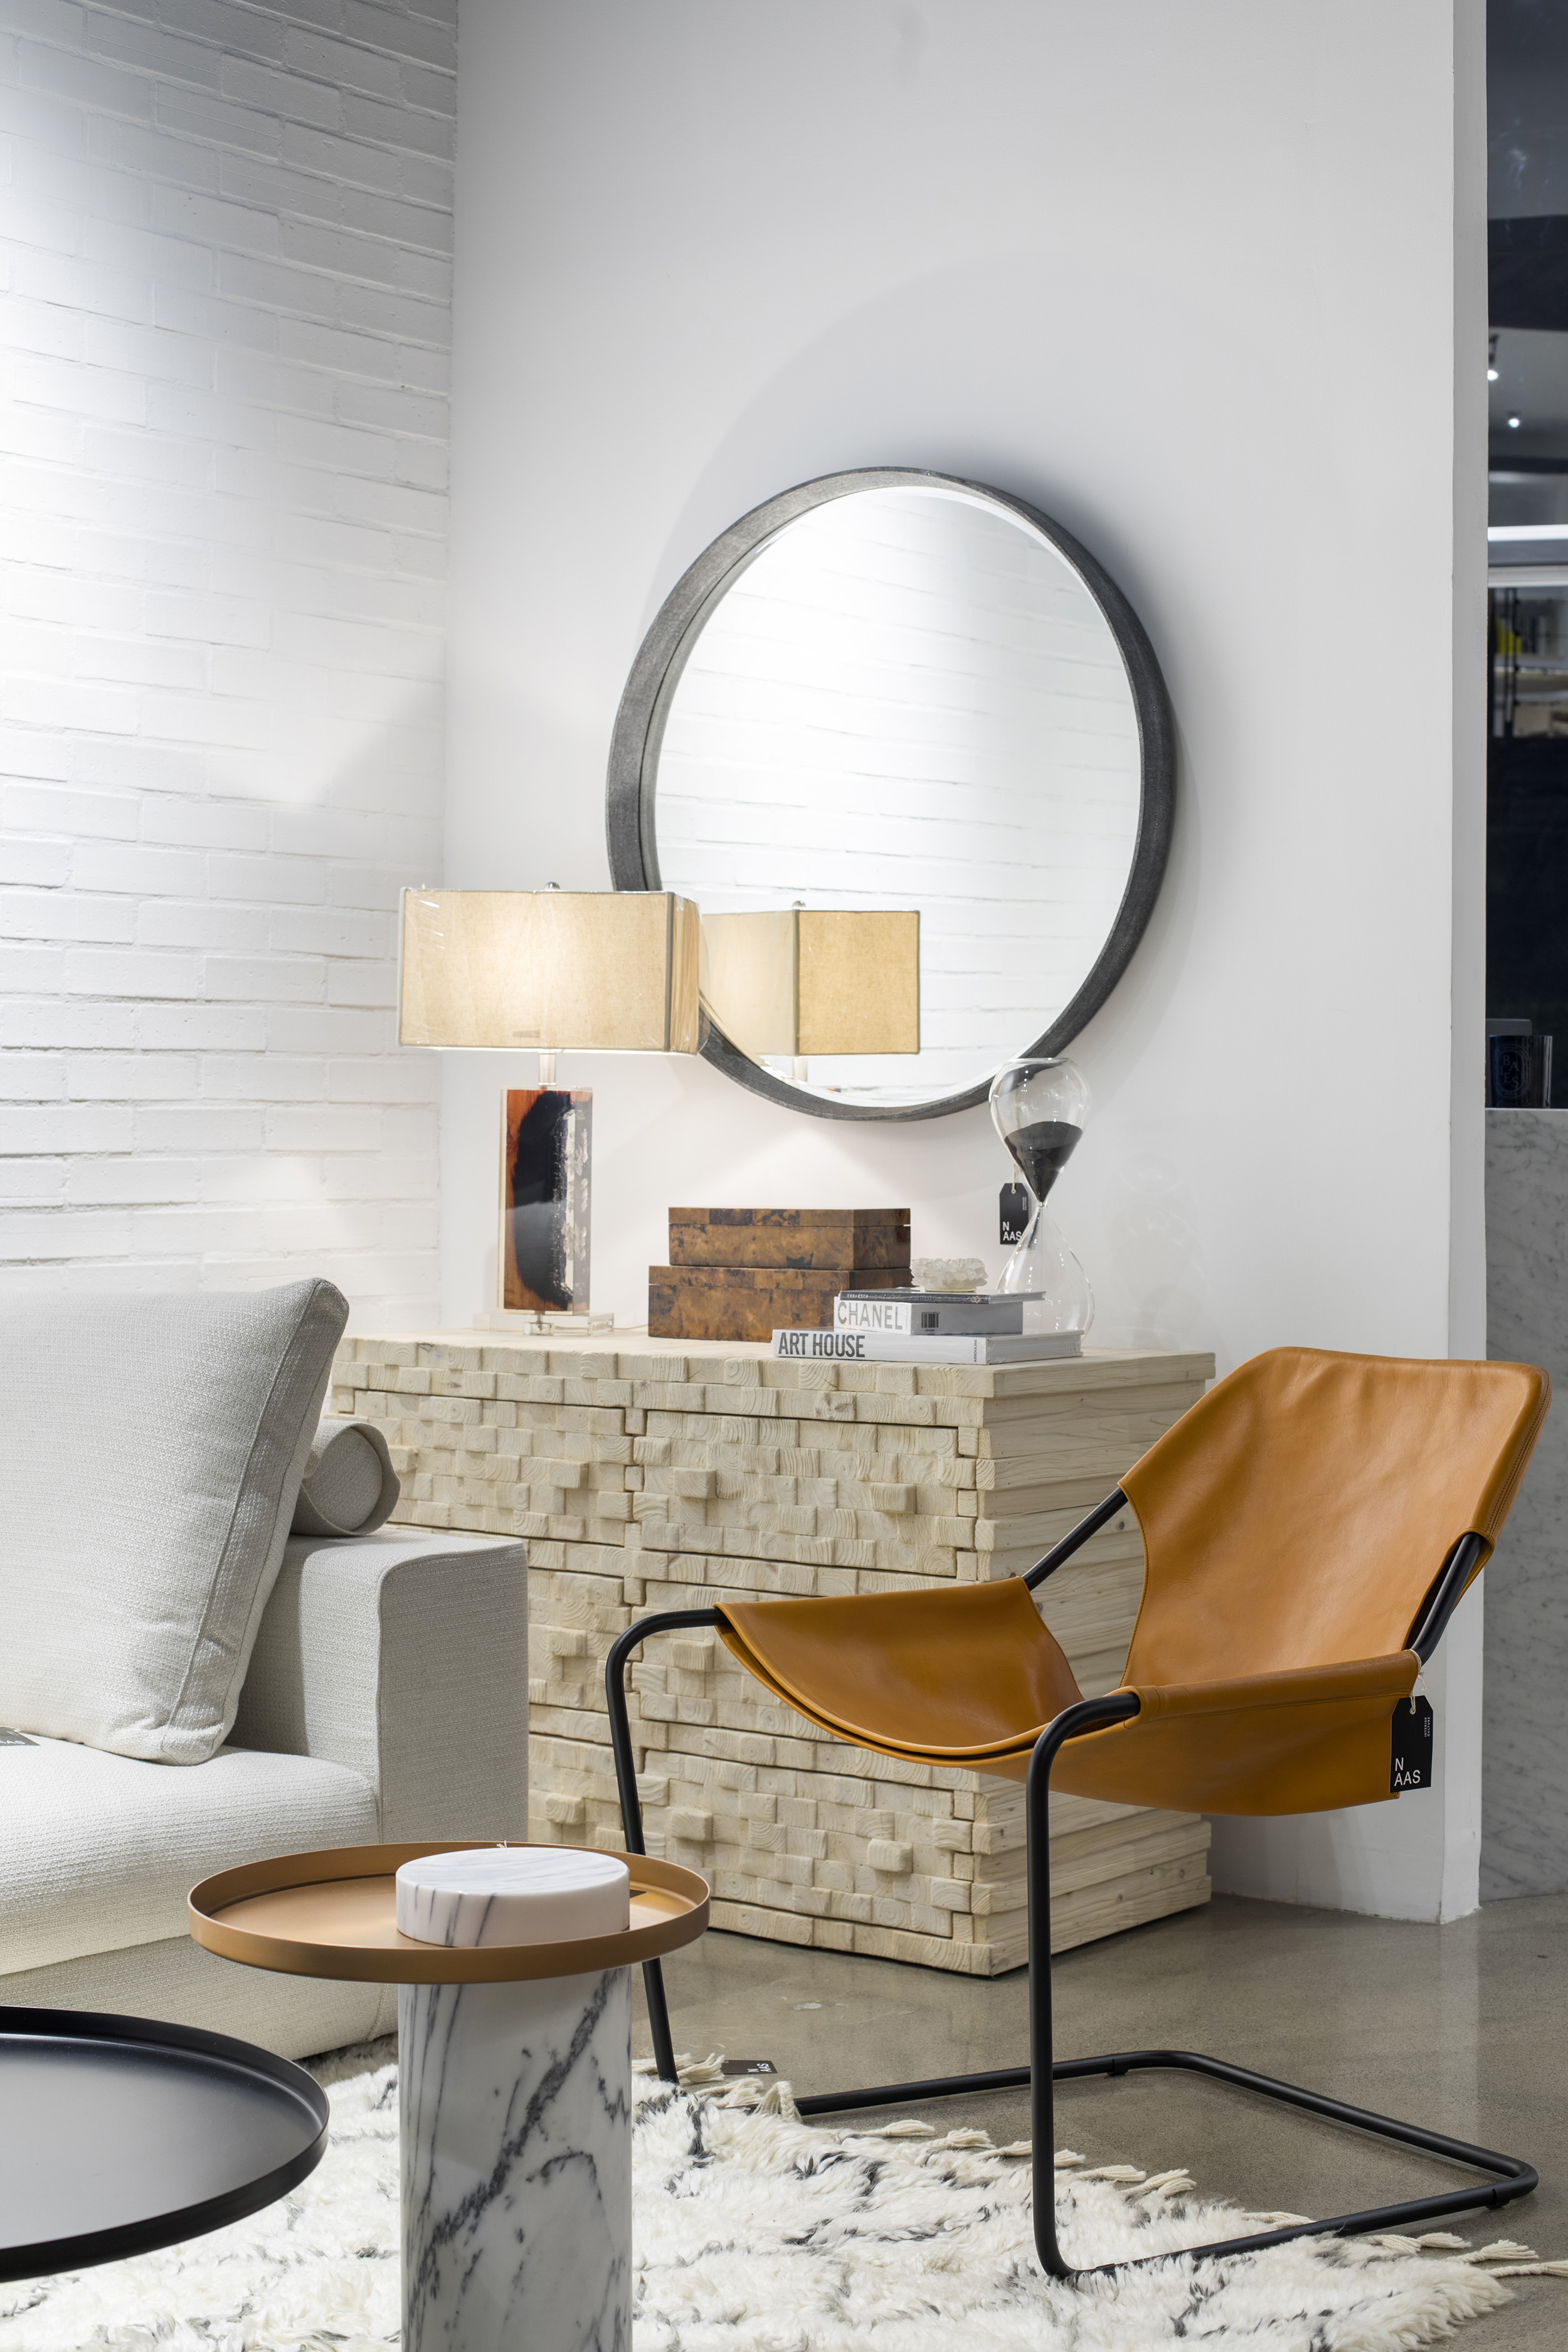 About Us - At NAAS our philosophy is based on innovation - to introduce the latest design trends to our clients and create alternatives for them to enjoy their lifestyle. To do so, we count on a showroom full of home fashions, materials and finishes where we use a